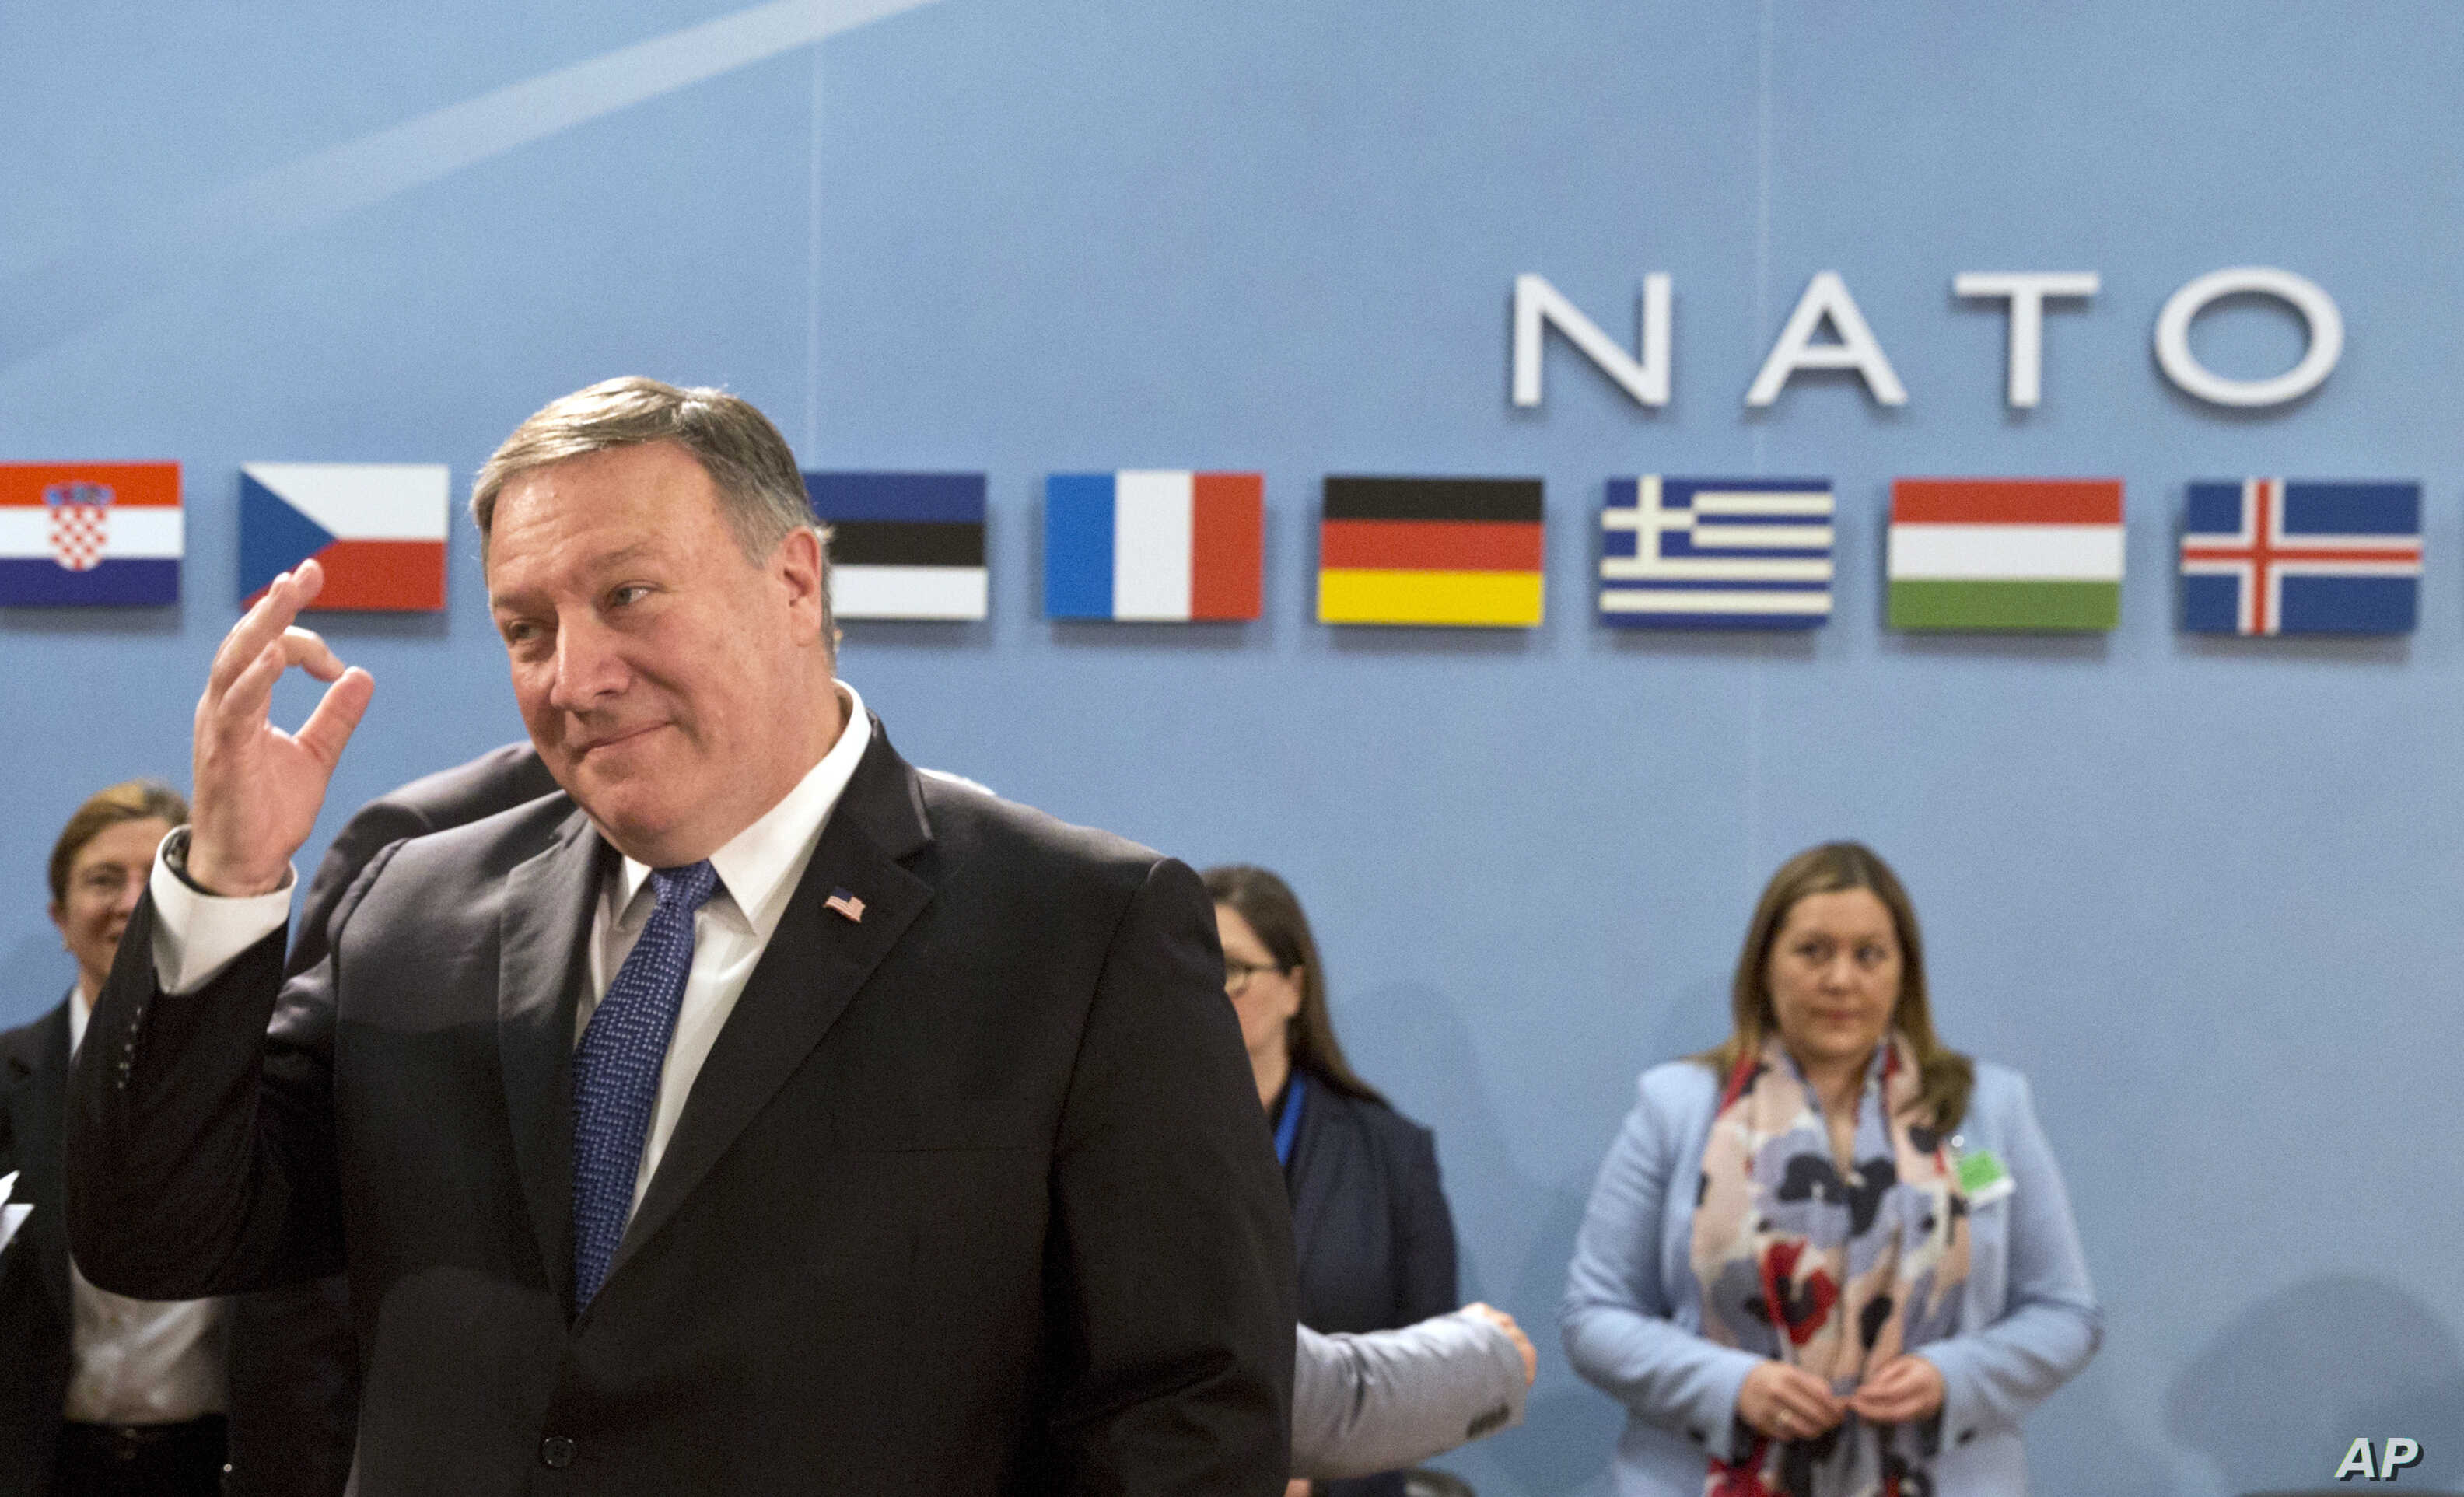 U.S. Secretary of State Mike Pompeo, left, waits for the start of the North Atlantic Council at NATO headquarters in Brussels, April 27, 2018.